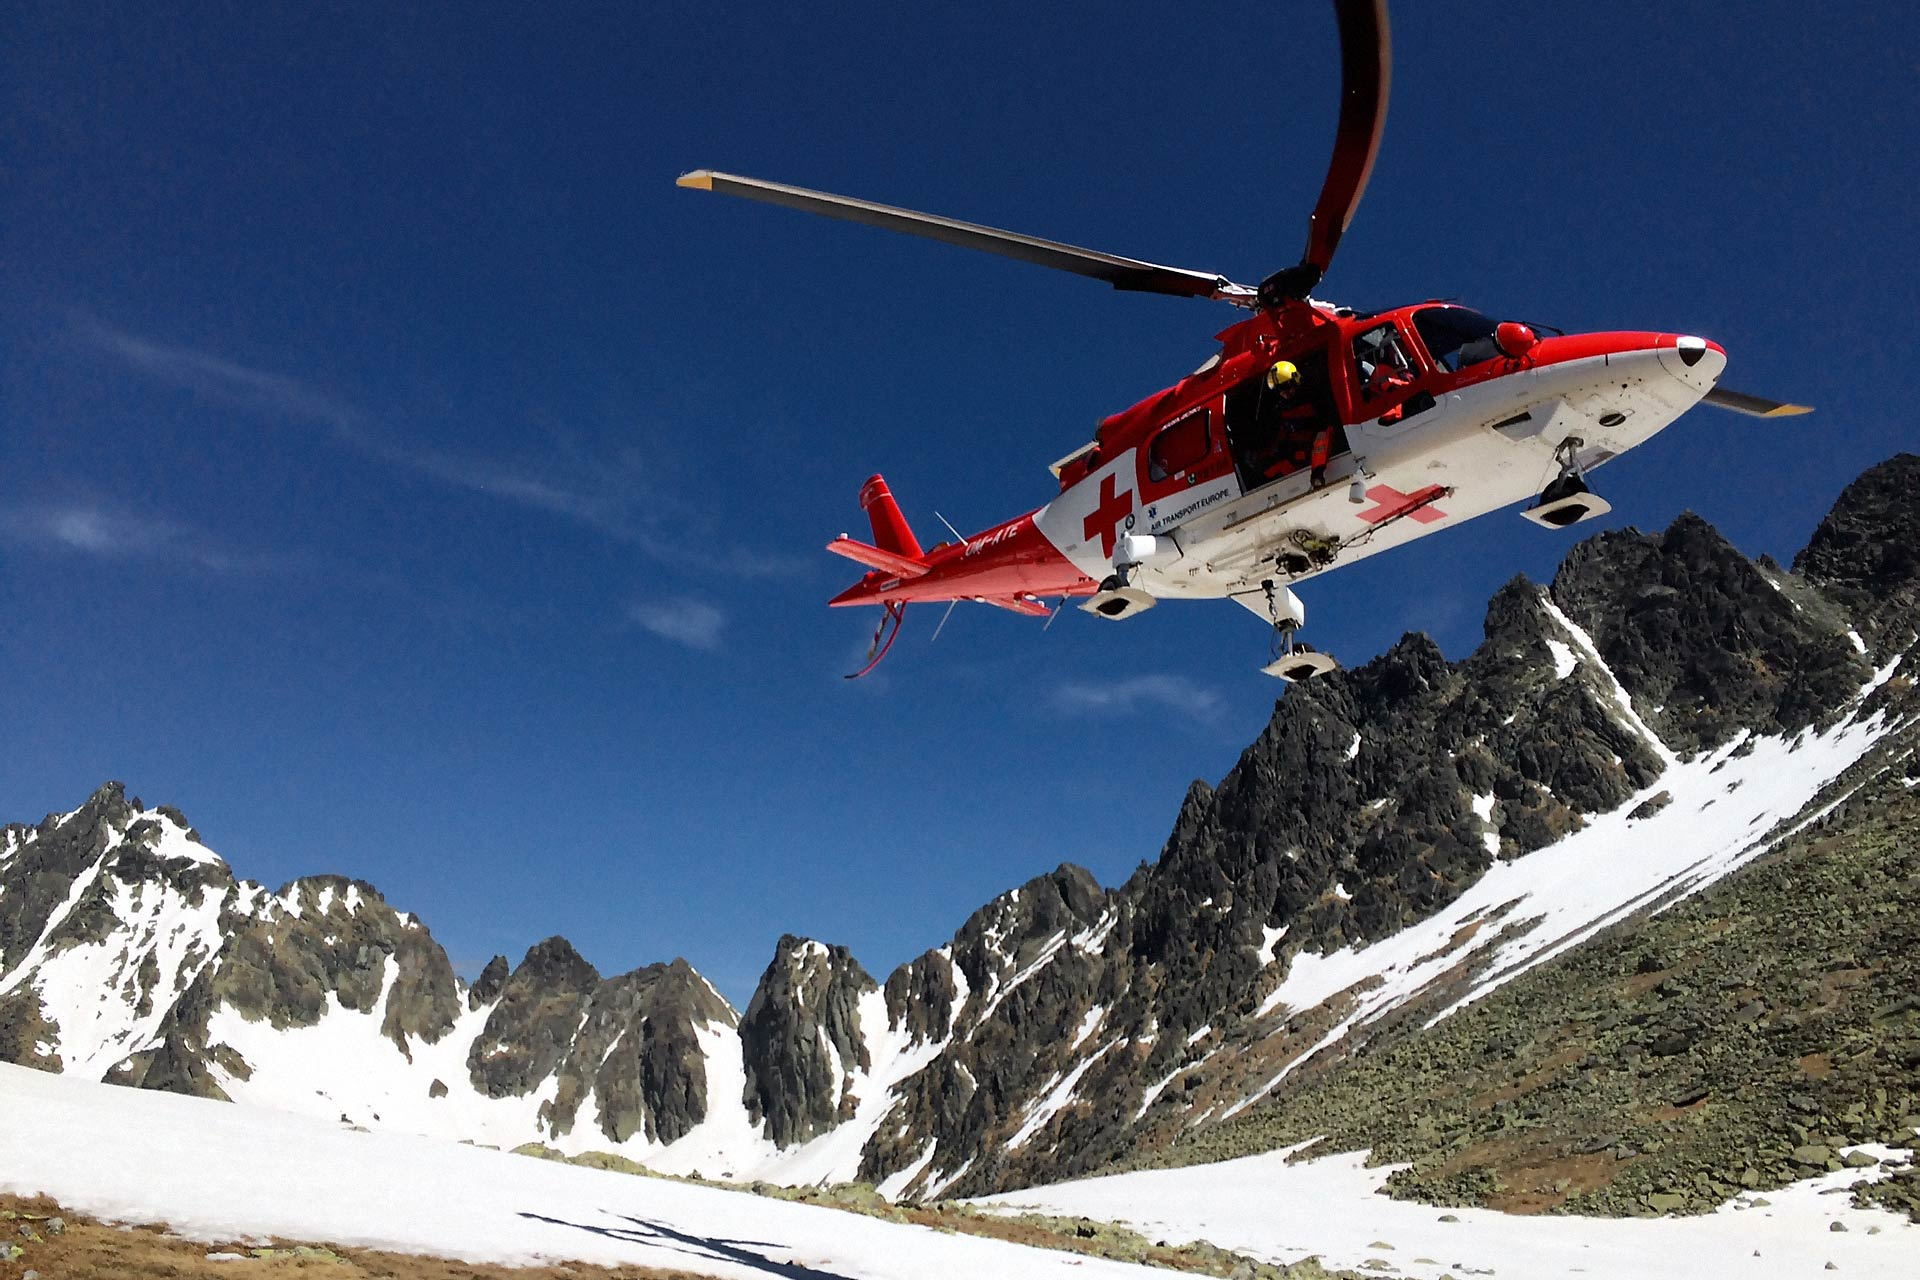 Helicopter emergency medical service (HEMS)